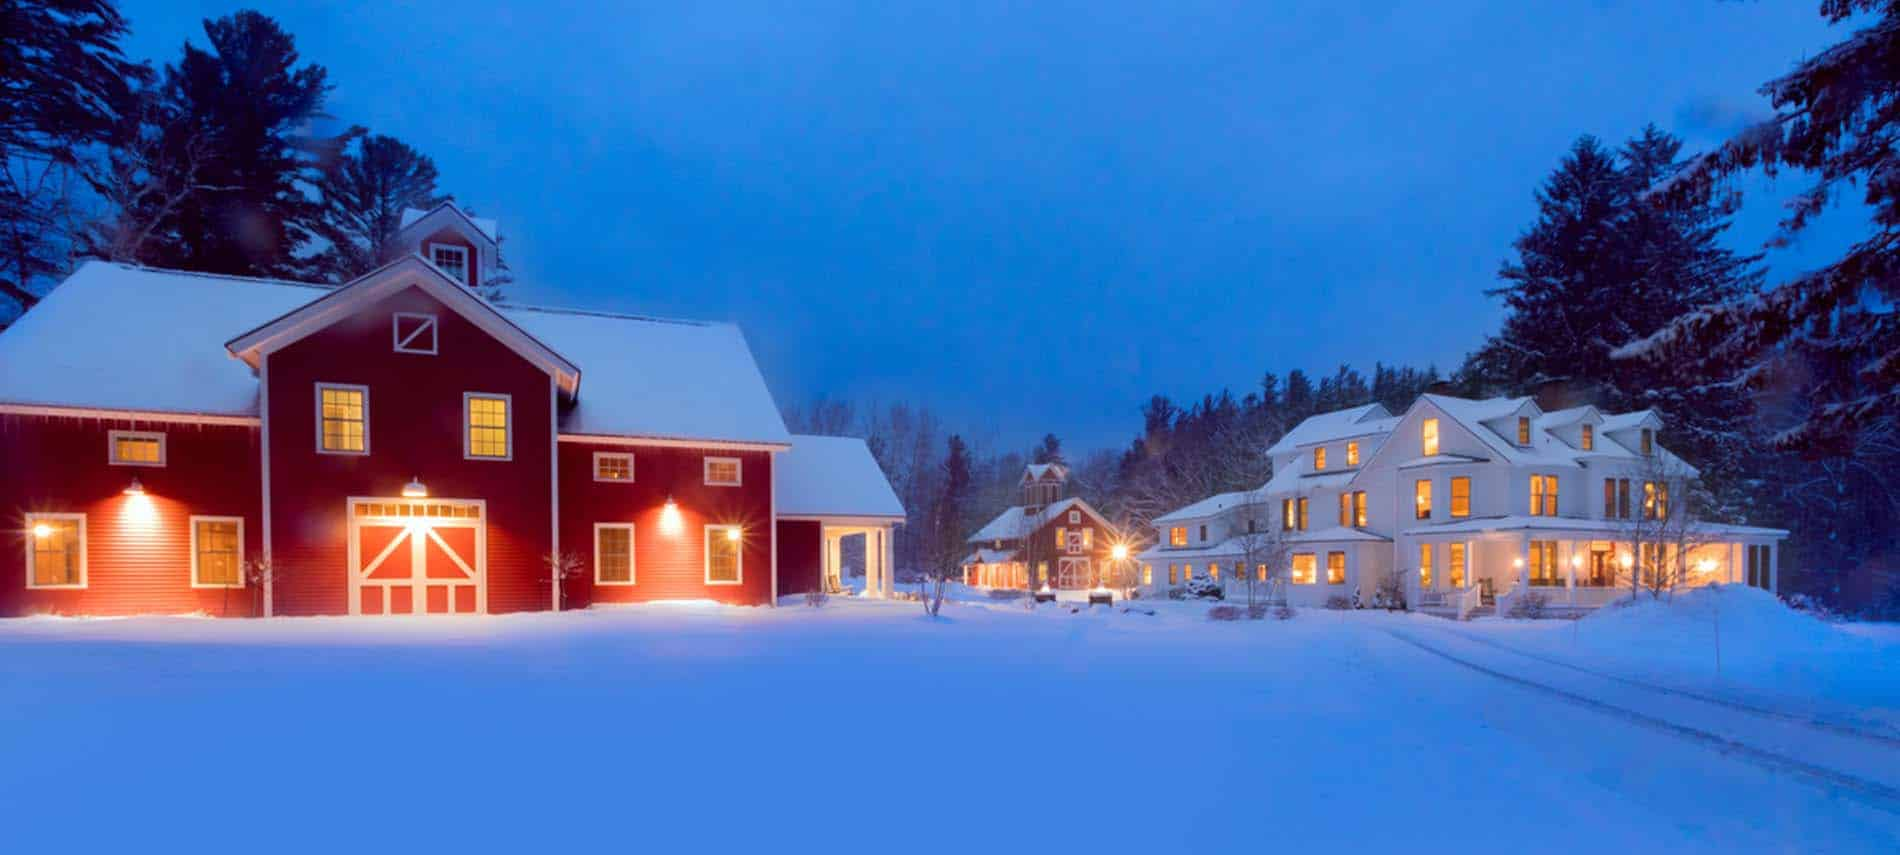 snowy scene at dusk with red barn and inn with glowing lights